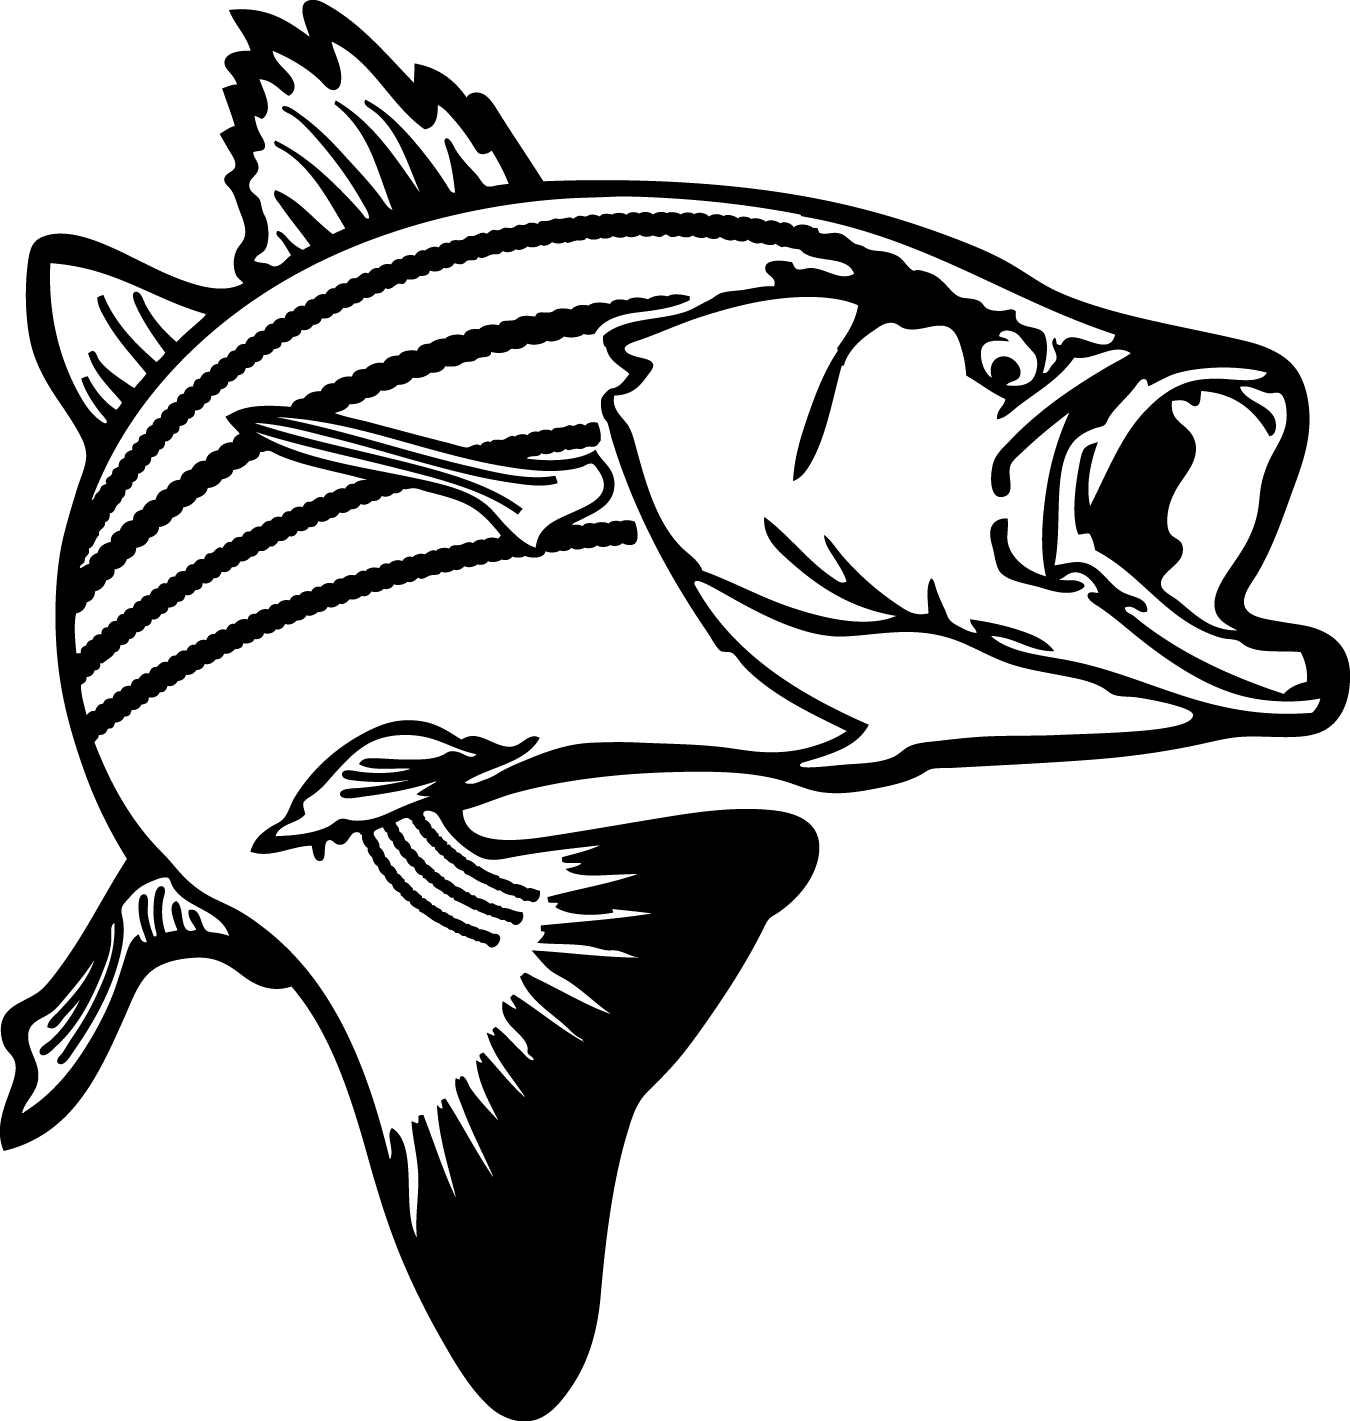 Black And White Fish Images | Free download best Black And White ... for Dried Fish Clipart  186ref